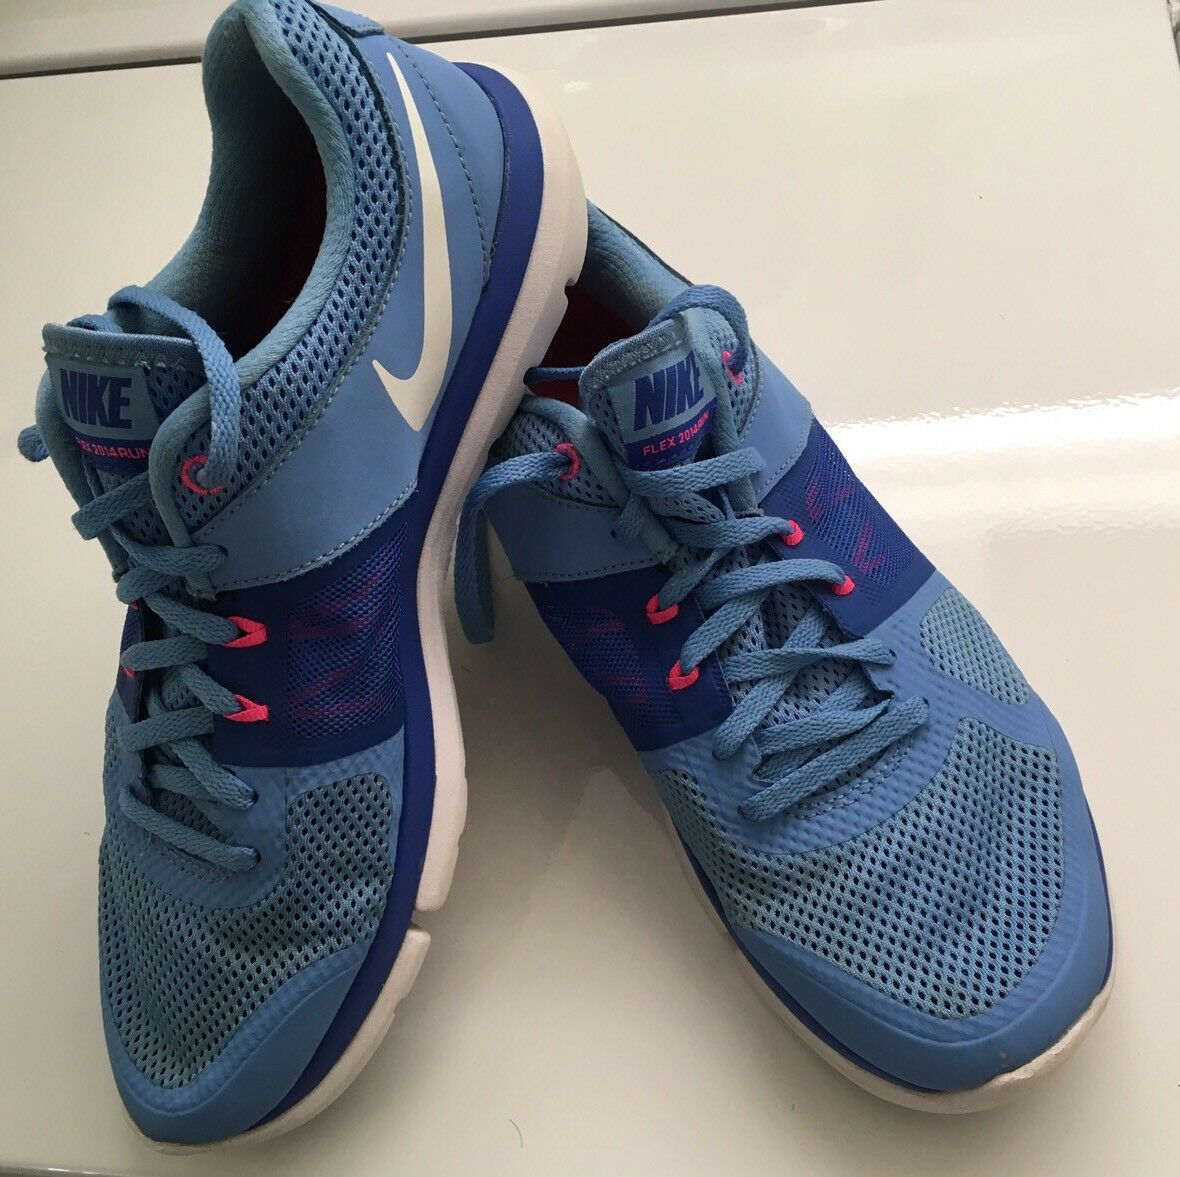 NIKE Flex 2014 Run Women US 10 Blue + White Athletic Running Trainers Shoes